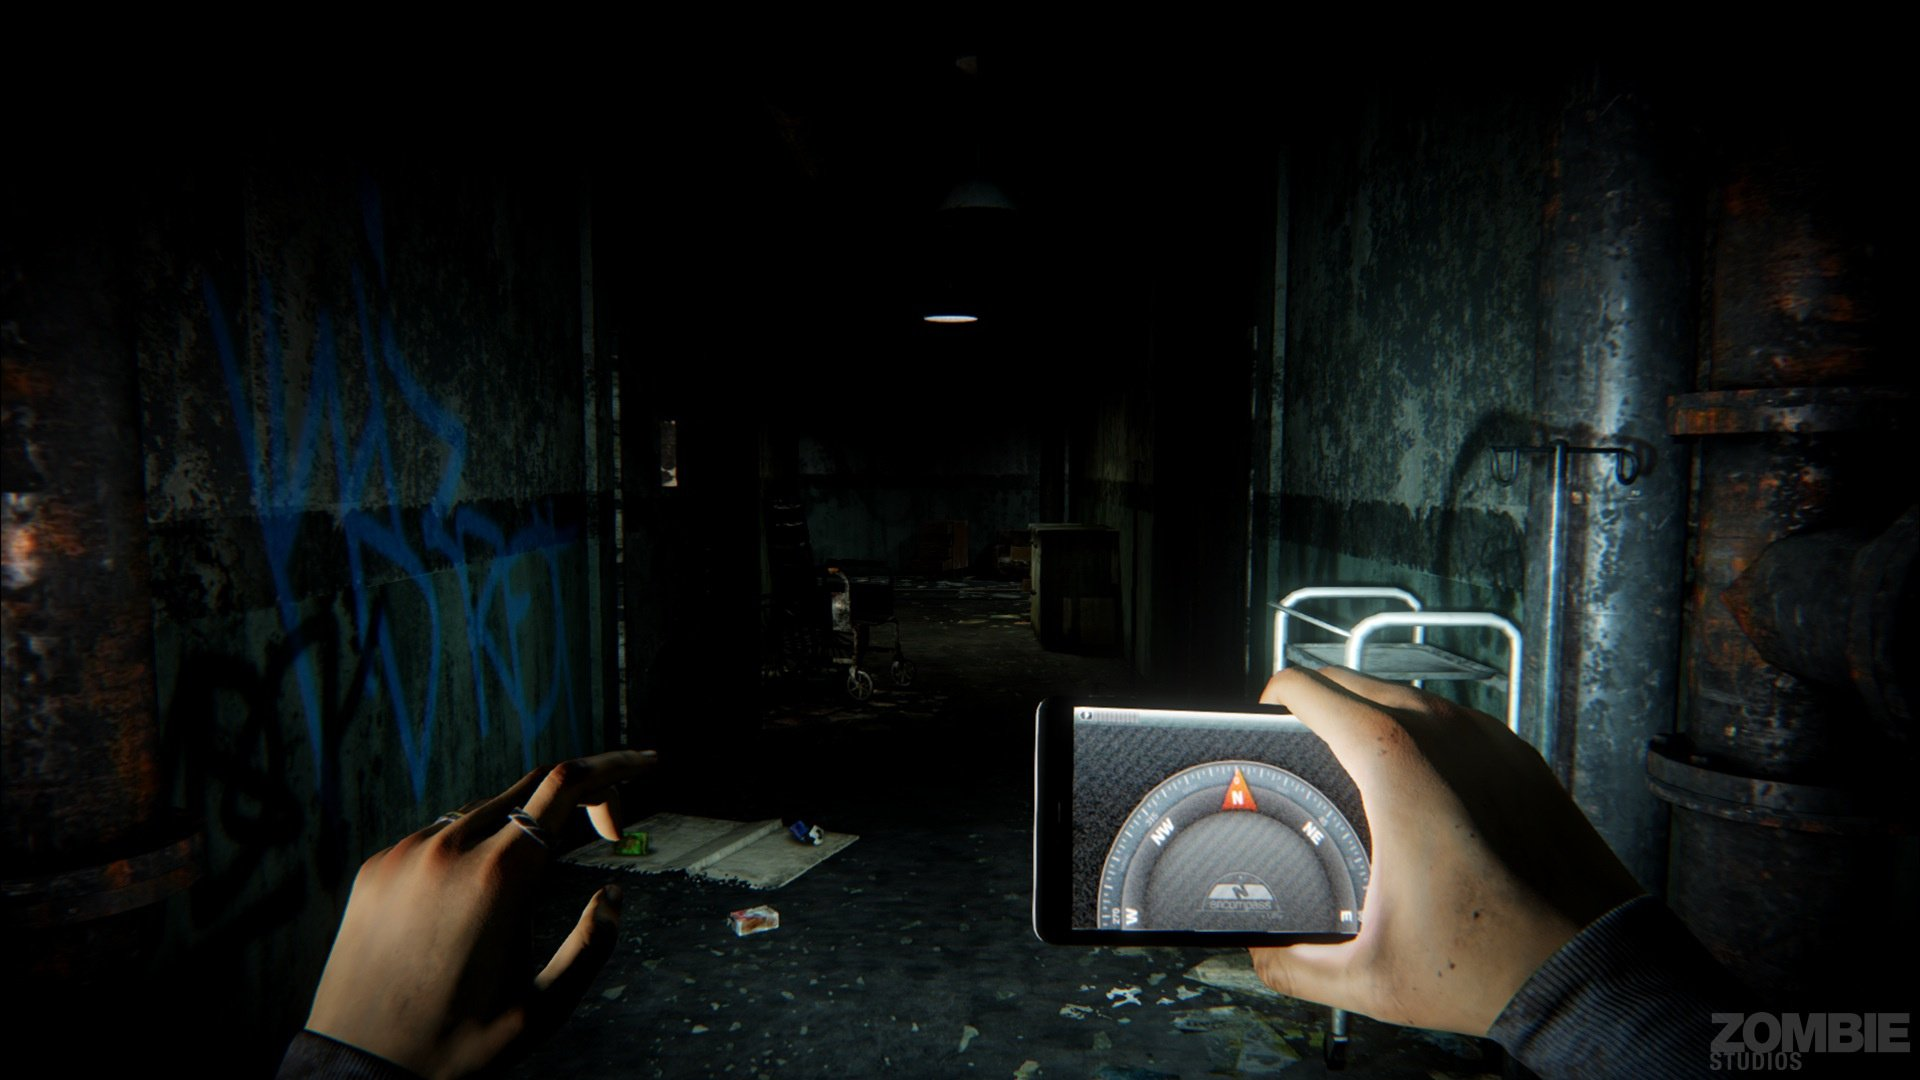 Daylight Ps4 Playstation 4 Game Profile News